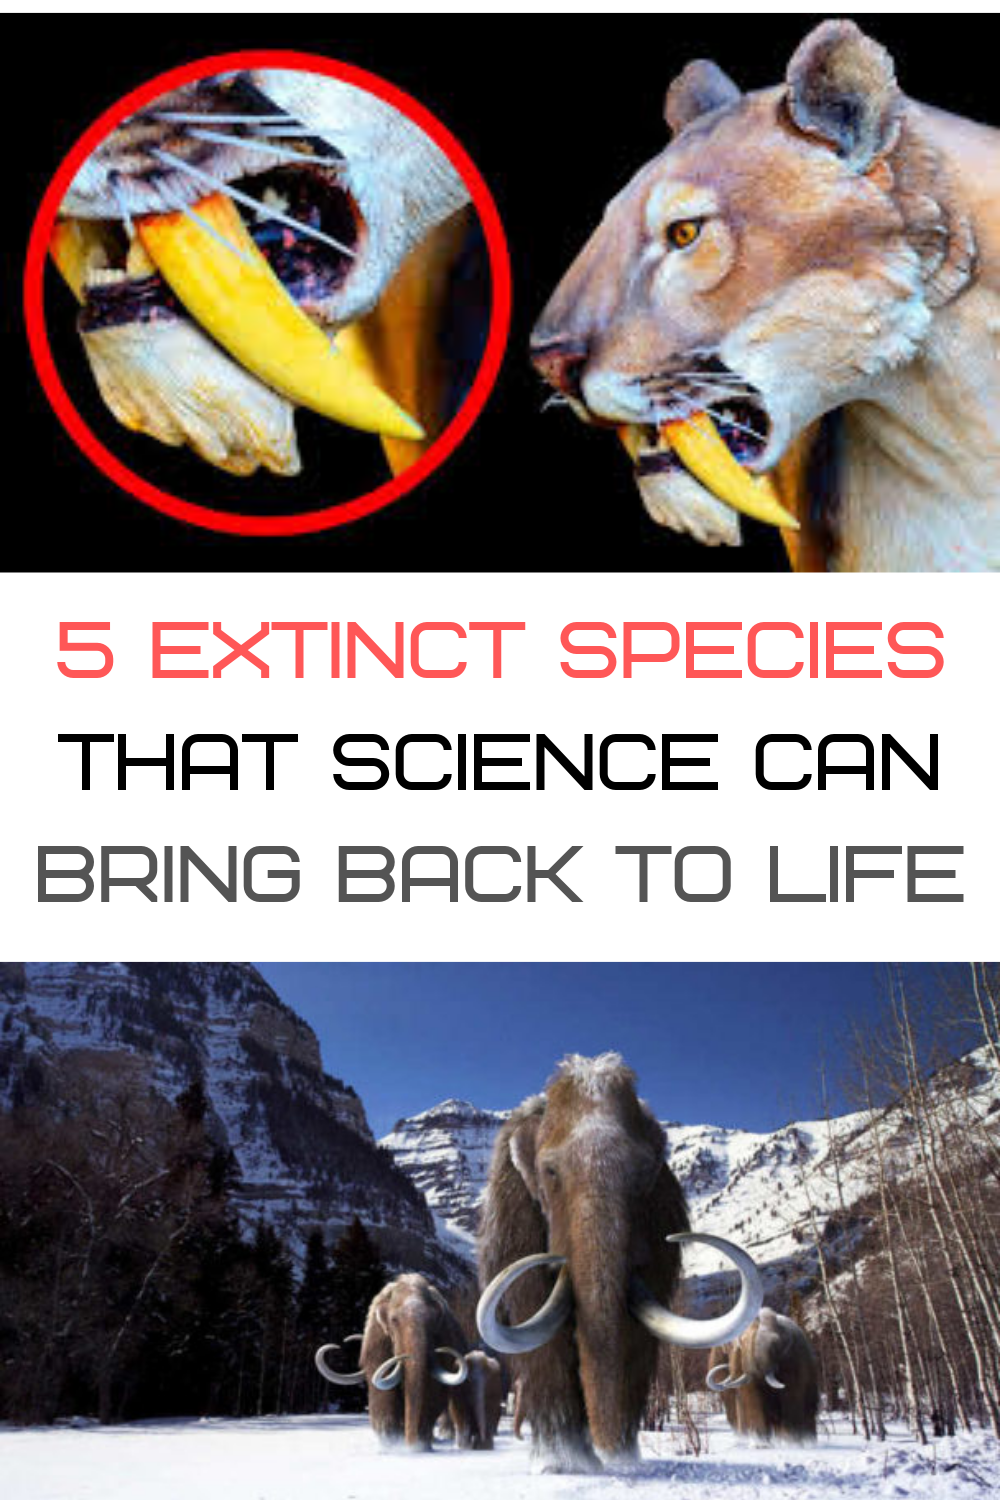 These are the 5 Extinct Species which scientists say could